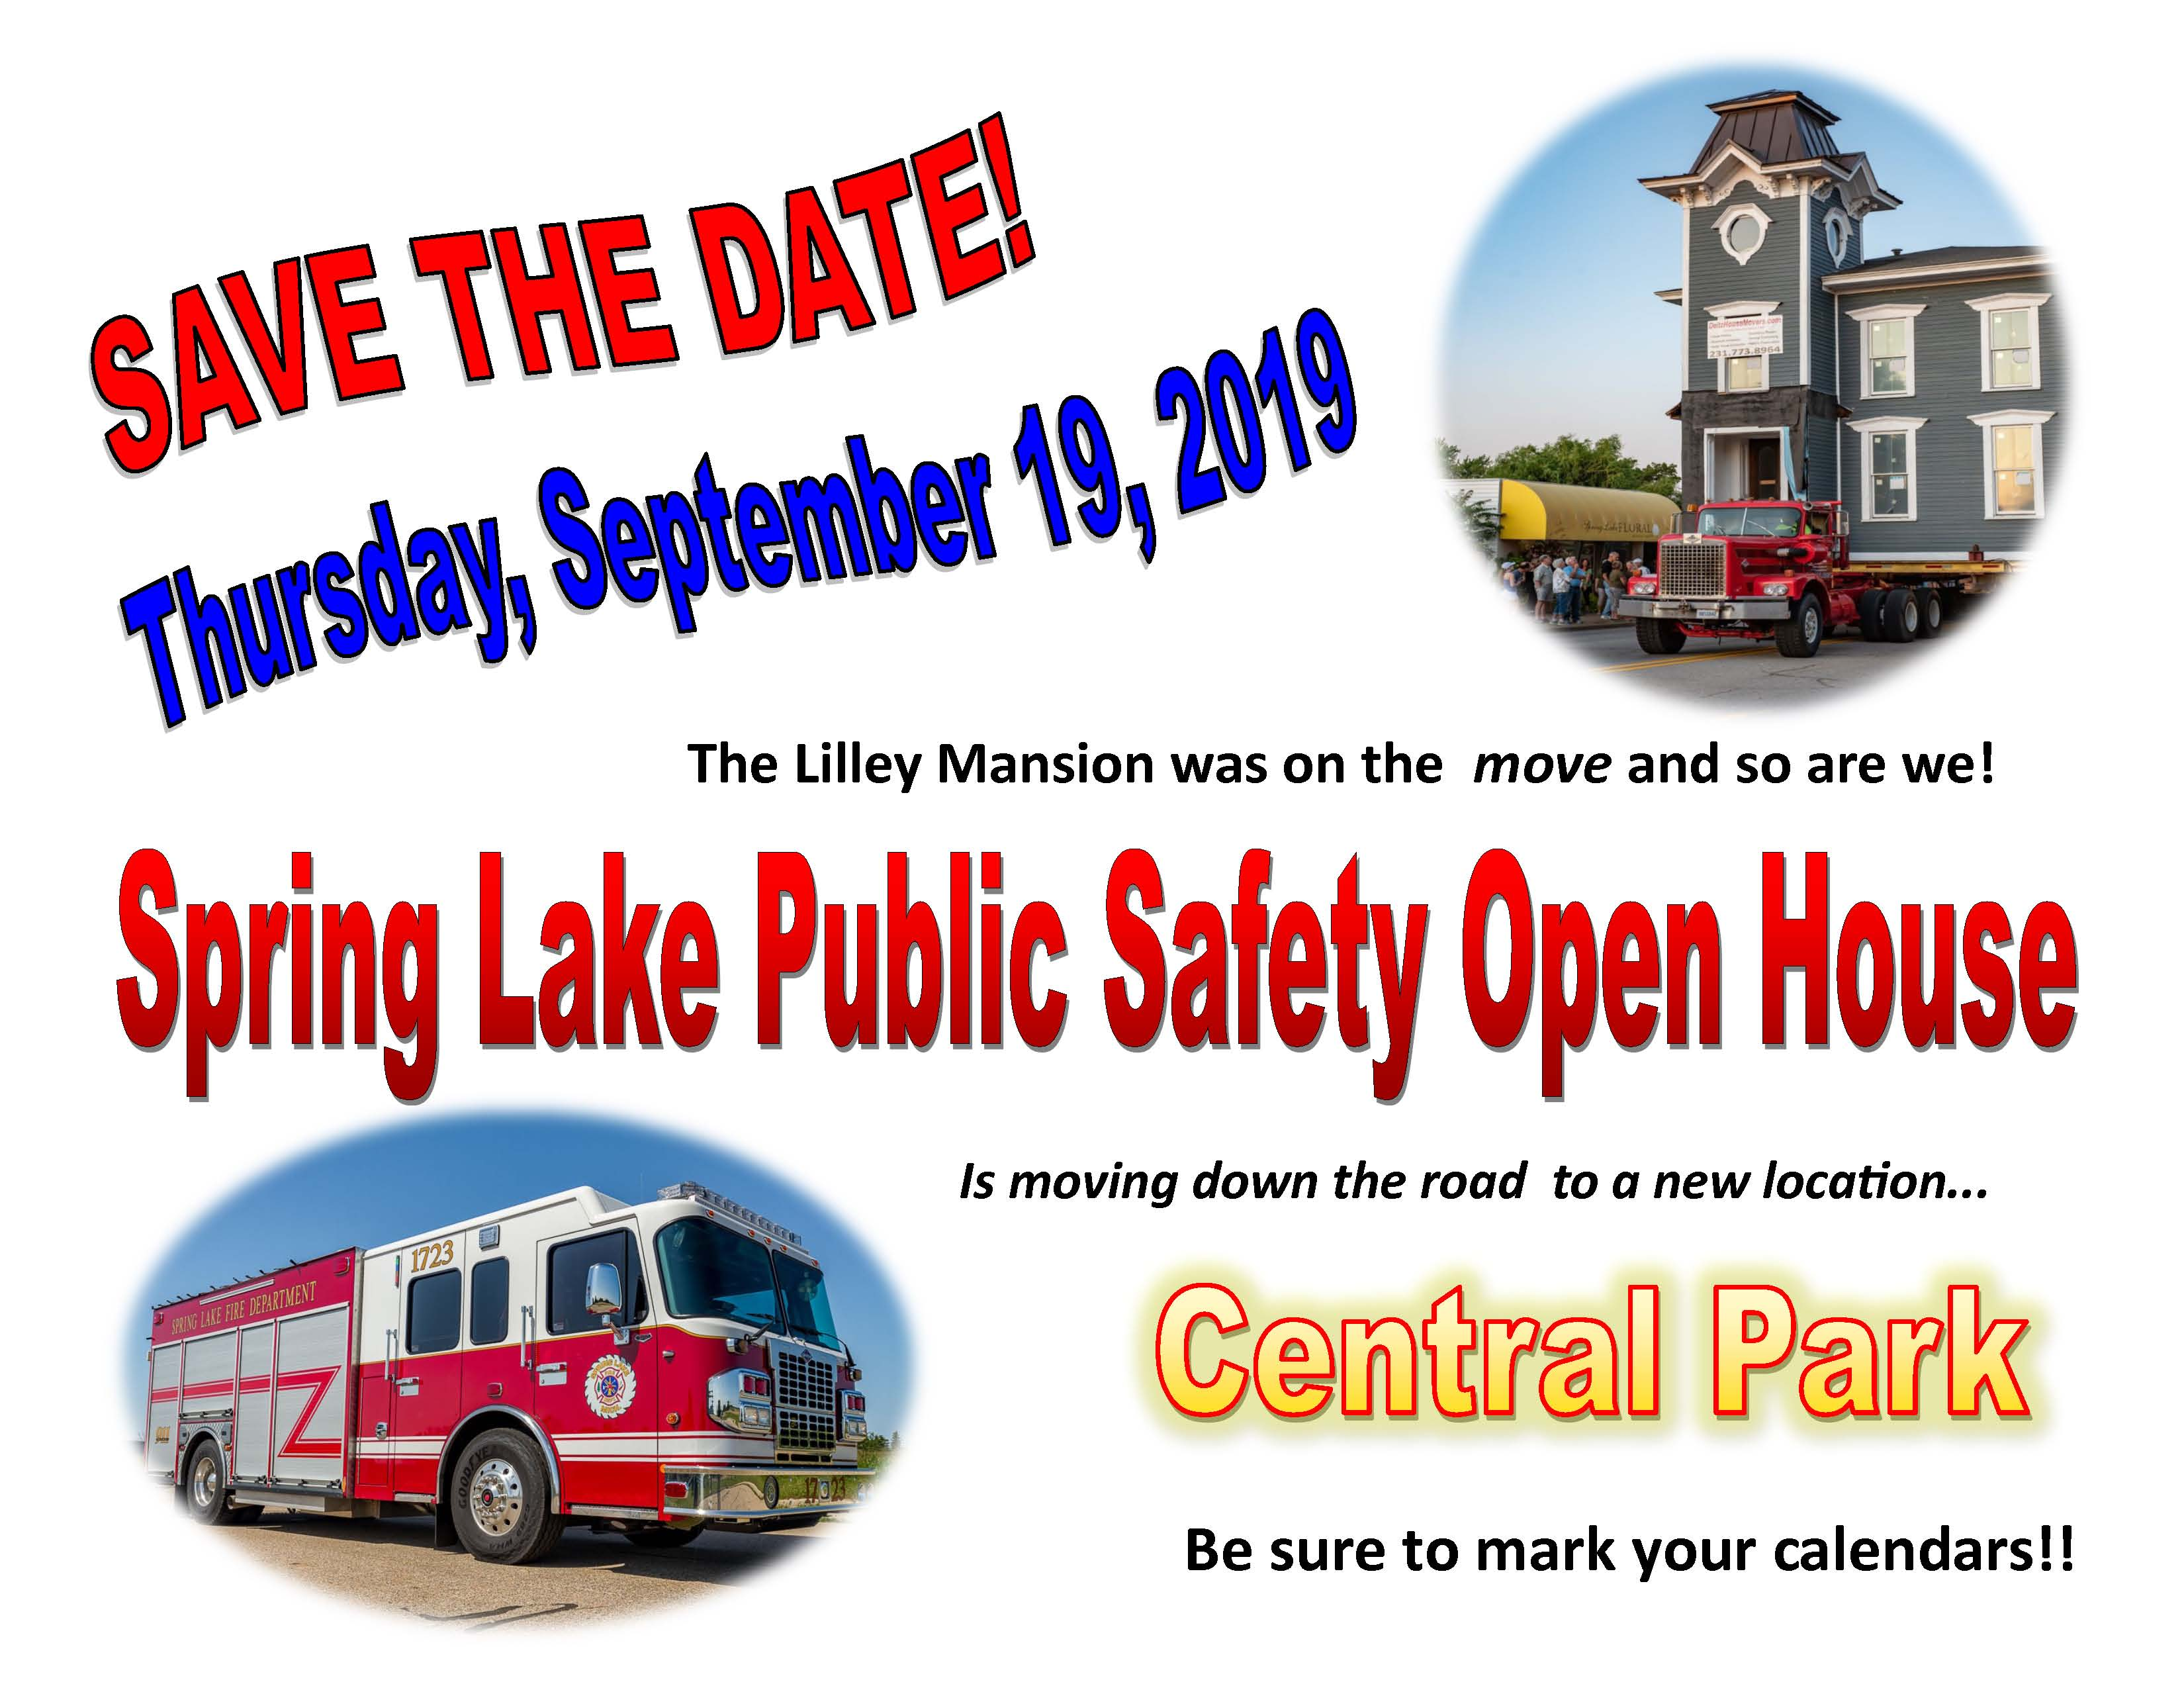 fire open house notice for September 19 2019